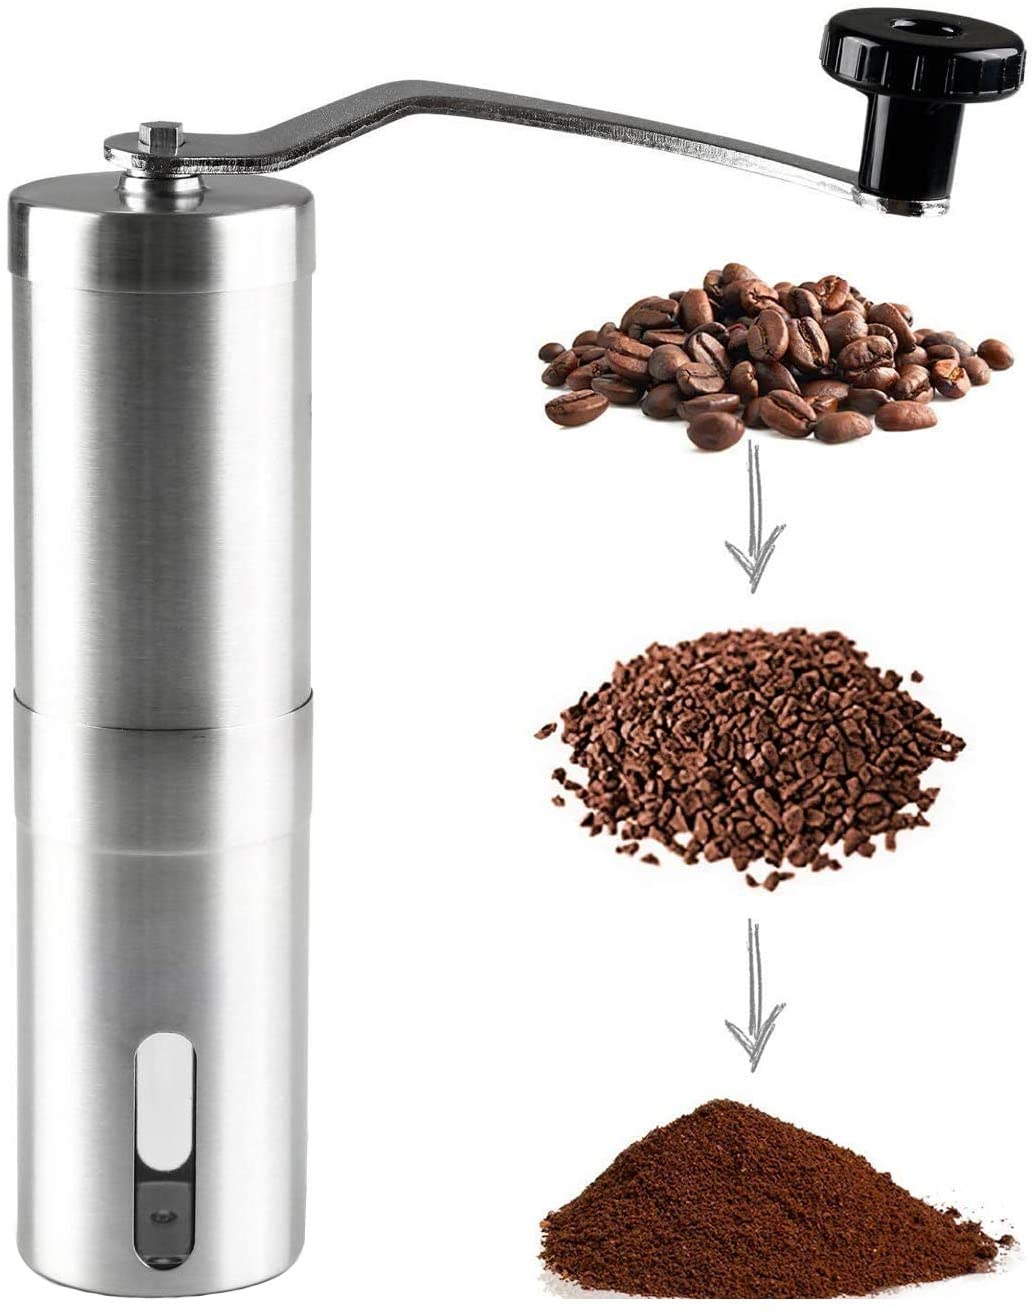 S-Tang Manual Coffee Grinder with Adjustable Setting - Conical Burr Mill & Brushed Stainless Steel Whole Bean Burr Coffee Grinder for Office, Home, Traveling, Camping